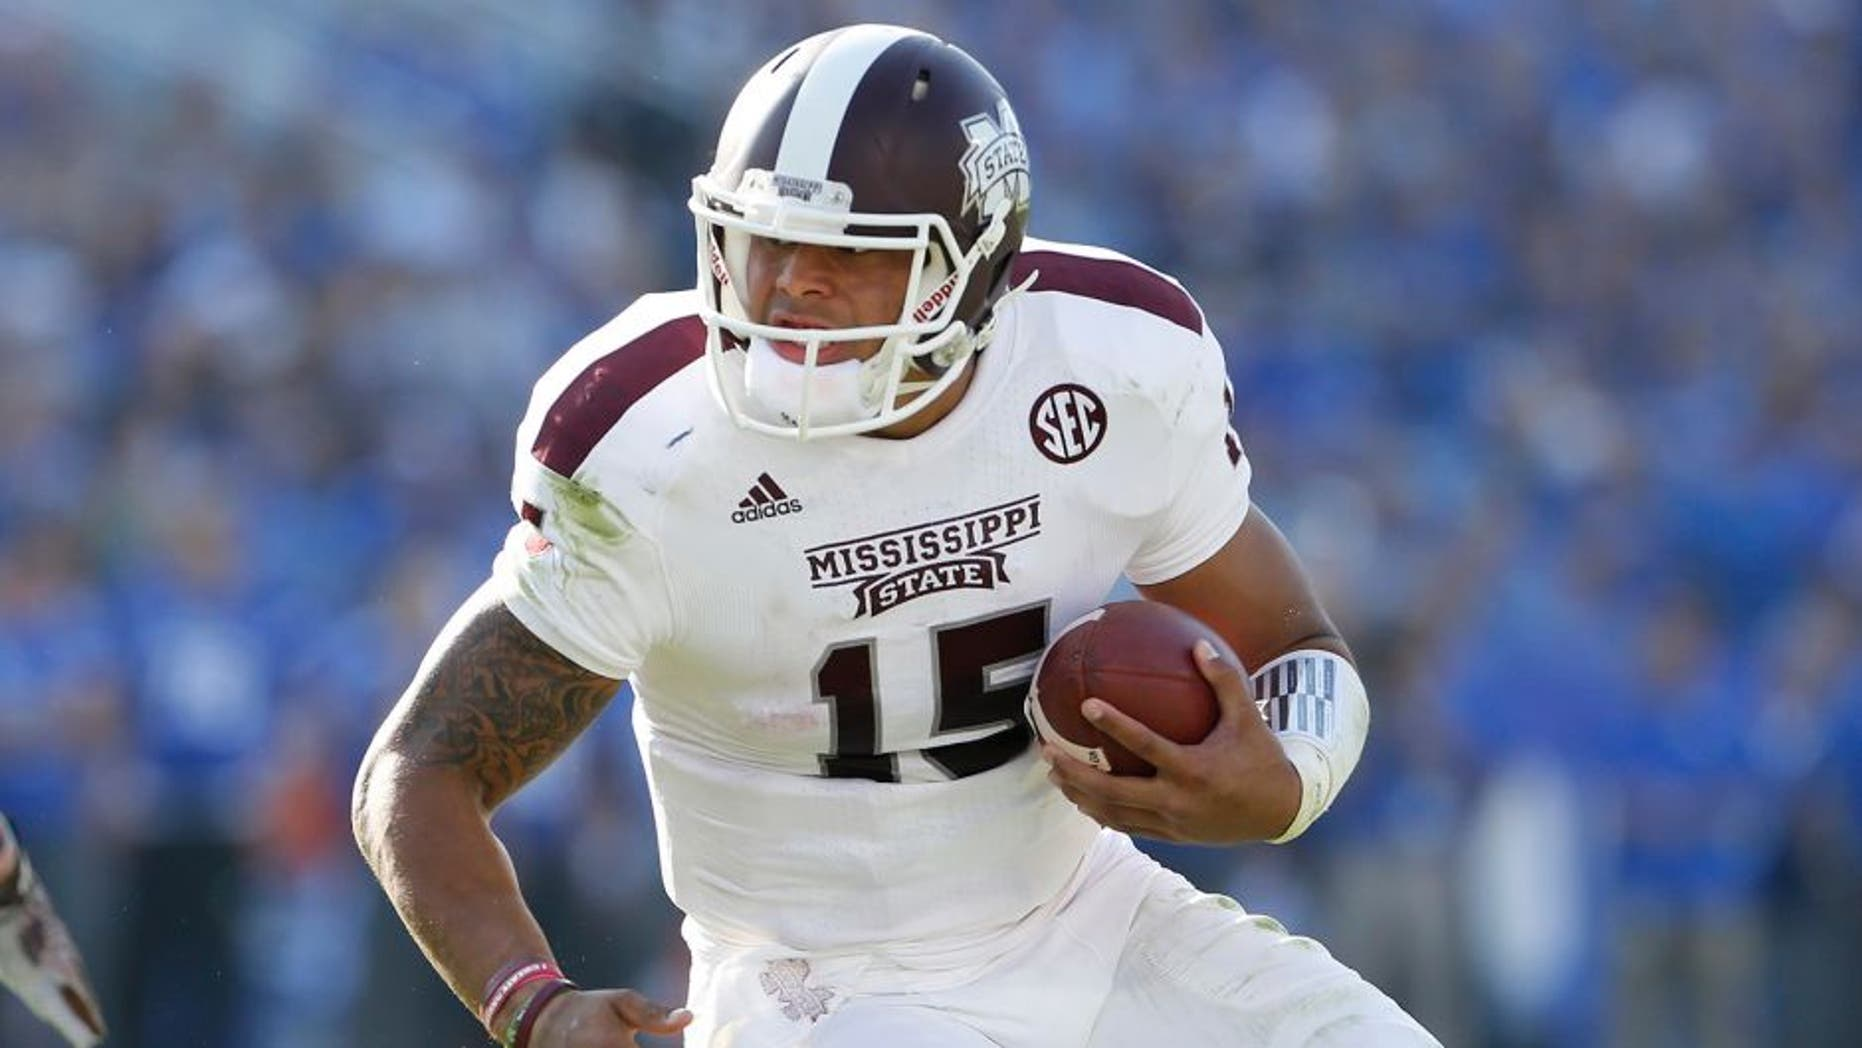 Oct 25, 2014; Lexington, KY, USA; Mississippi State Bulldogs quarterback Dak Prescott (15) runs the ball against the Kentucky Wildcats at Commonwealth Stadium. Mandatory Credit: Mark Zerof-USA TODAY Sports